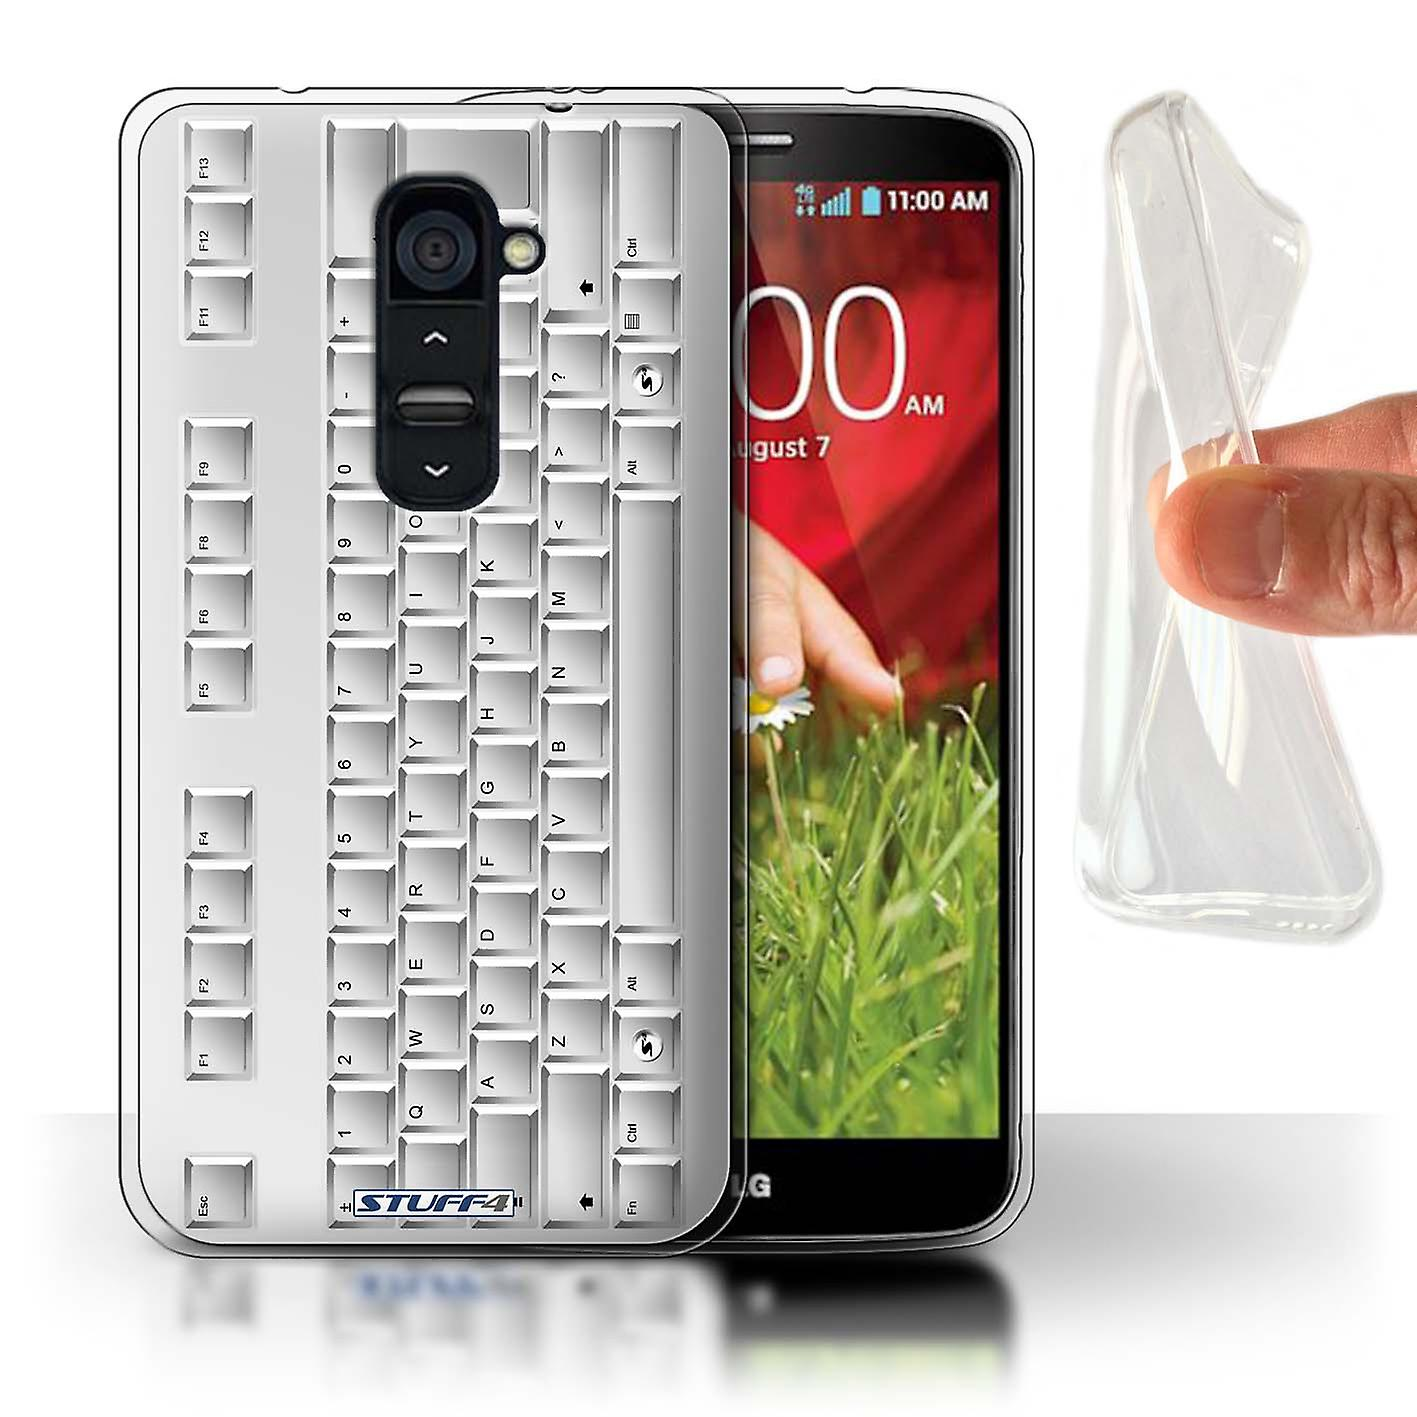 Lg G2 White Cover For Case Cases Silicone Flexible Gel D802 32gb Free Flip Download